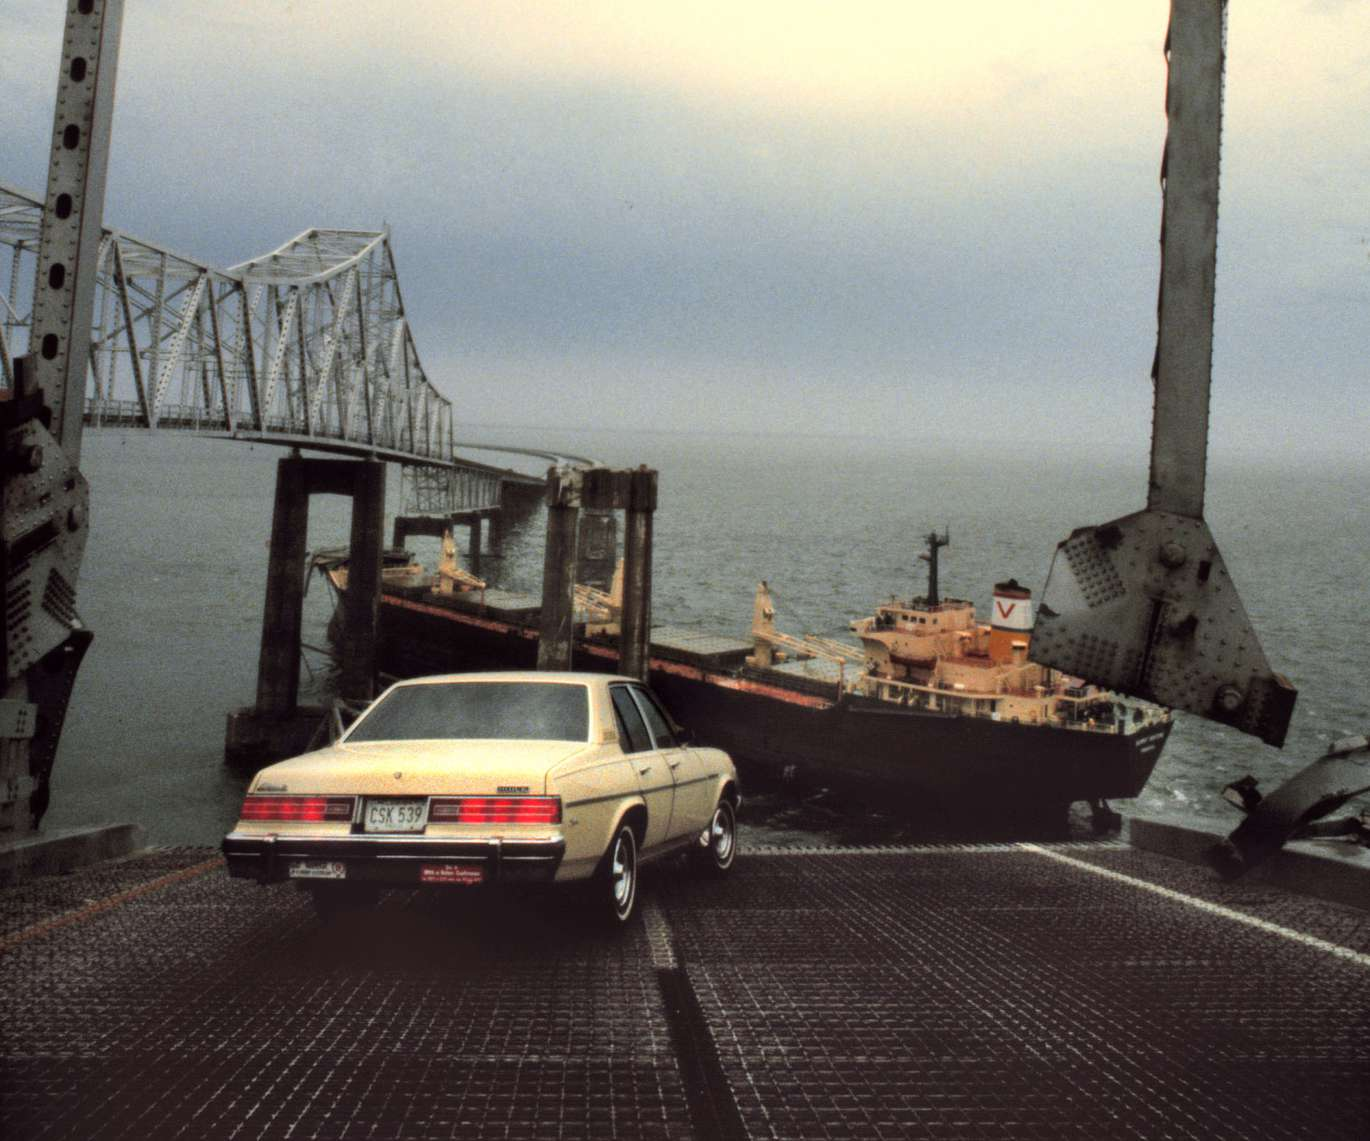 The Sunshine Skyway Bridge plunged into Tampa Bay 39 years ago